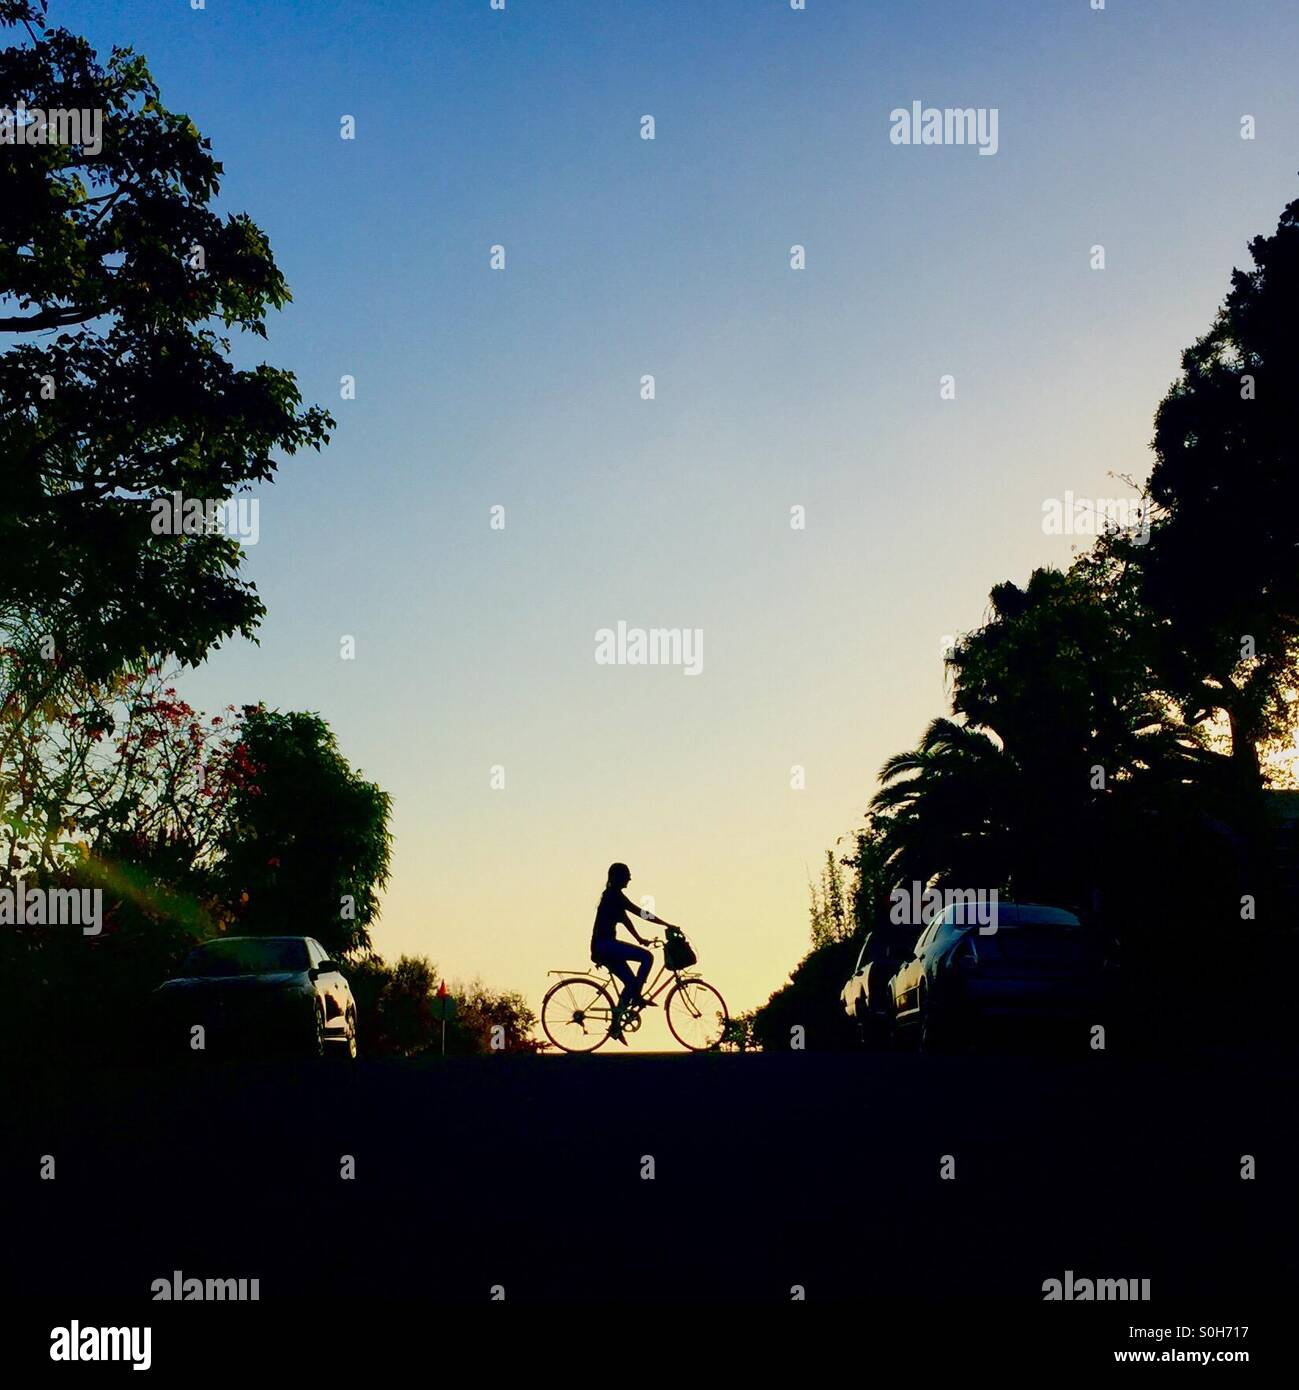 Silhouette of a girl riding a bike Stock Photo